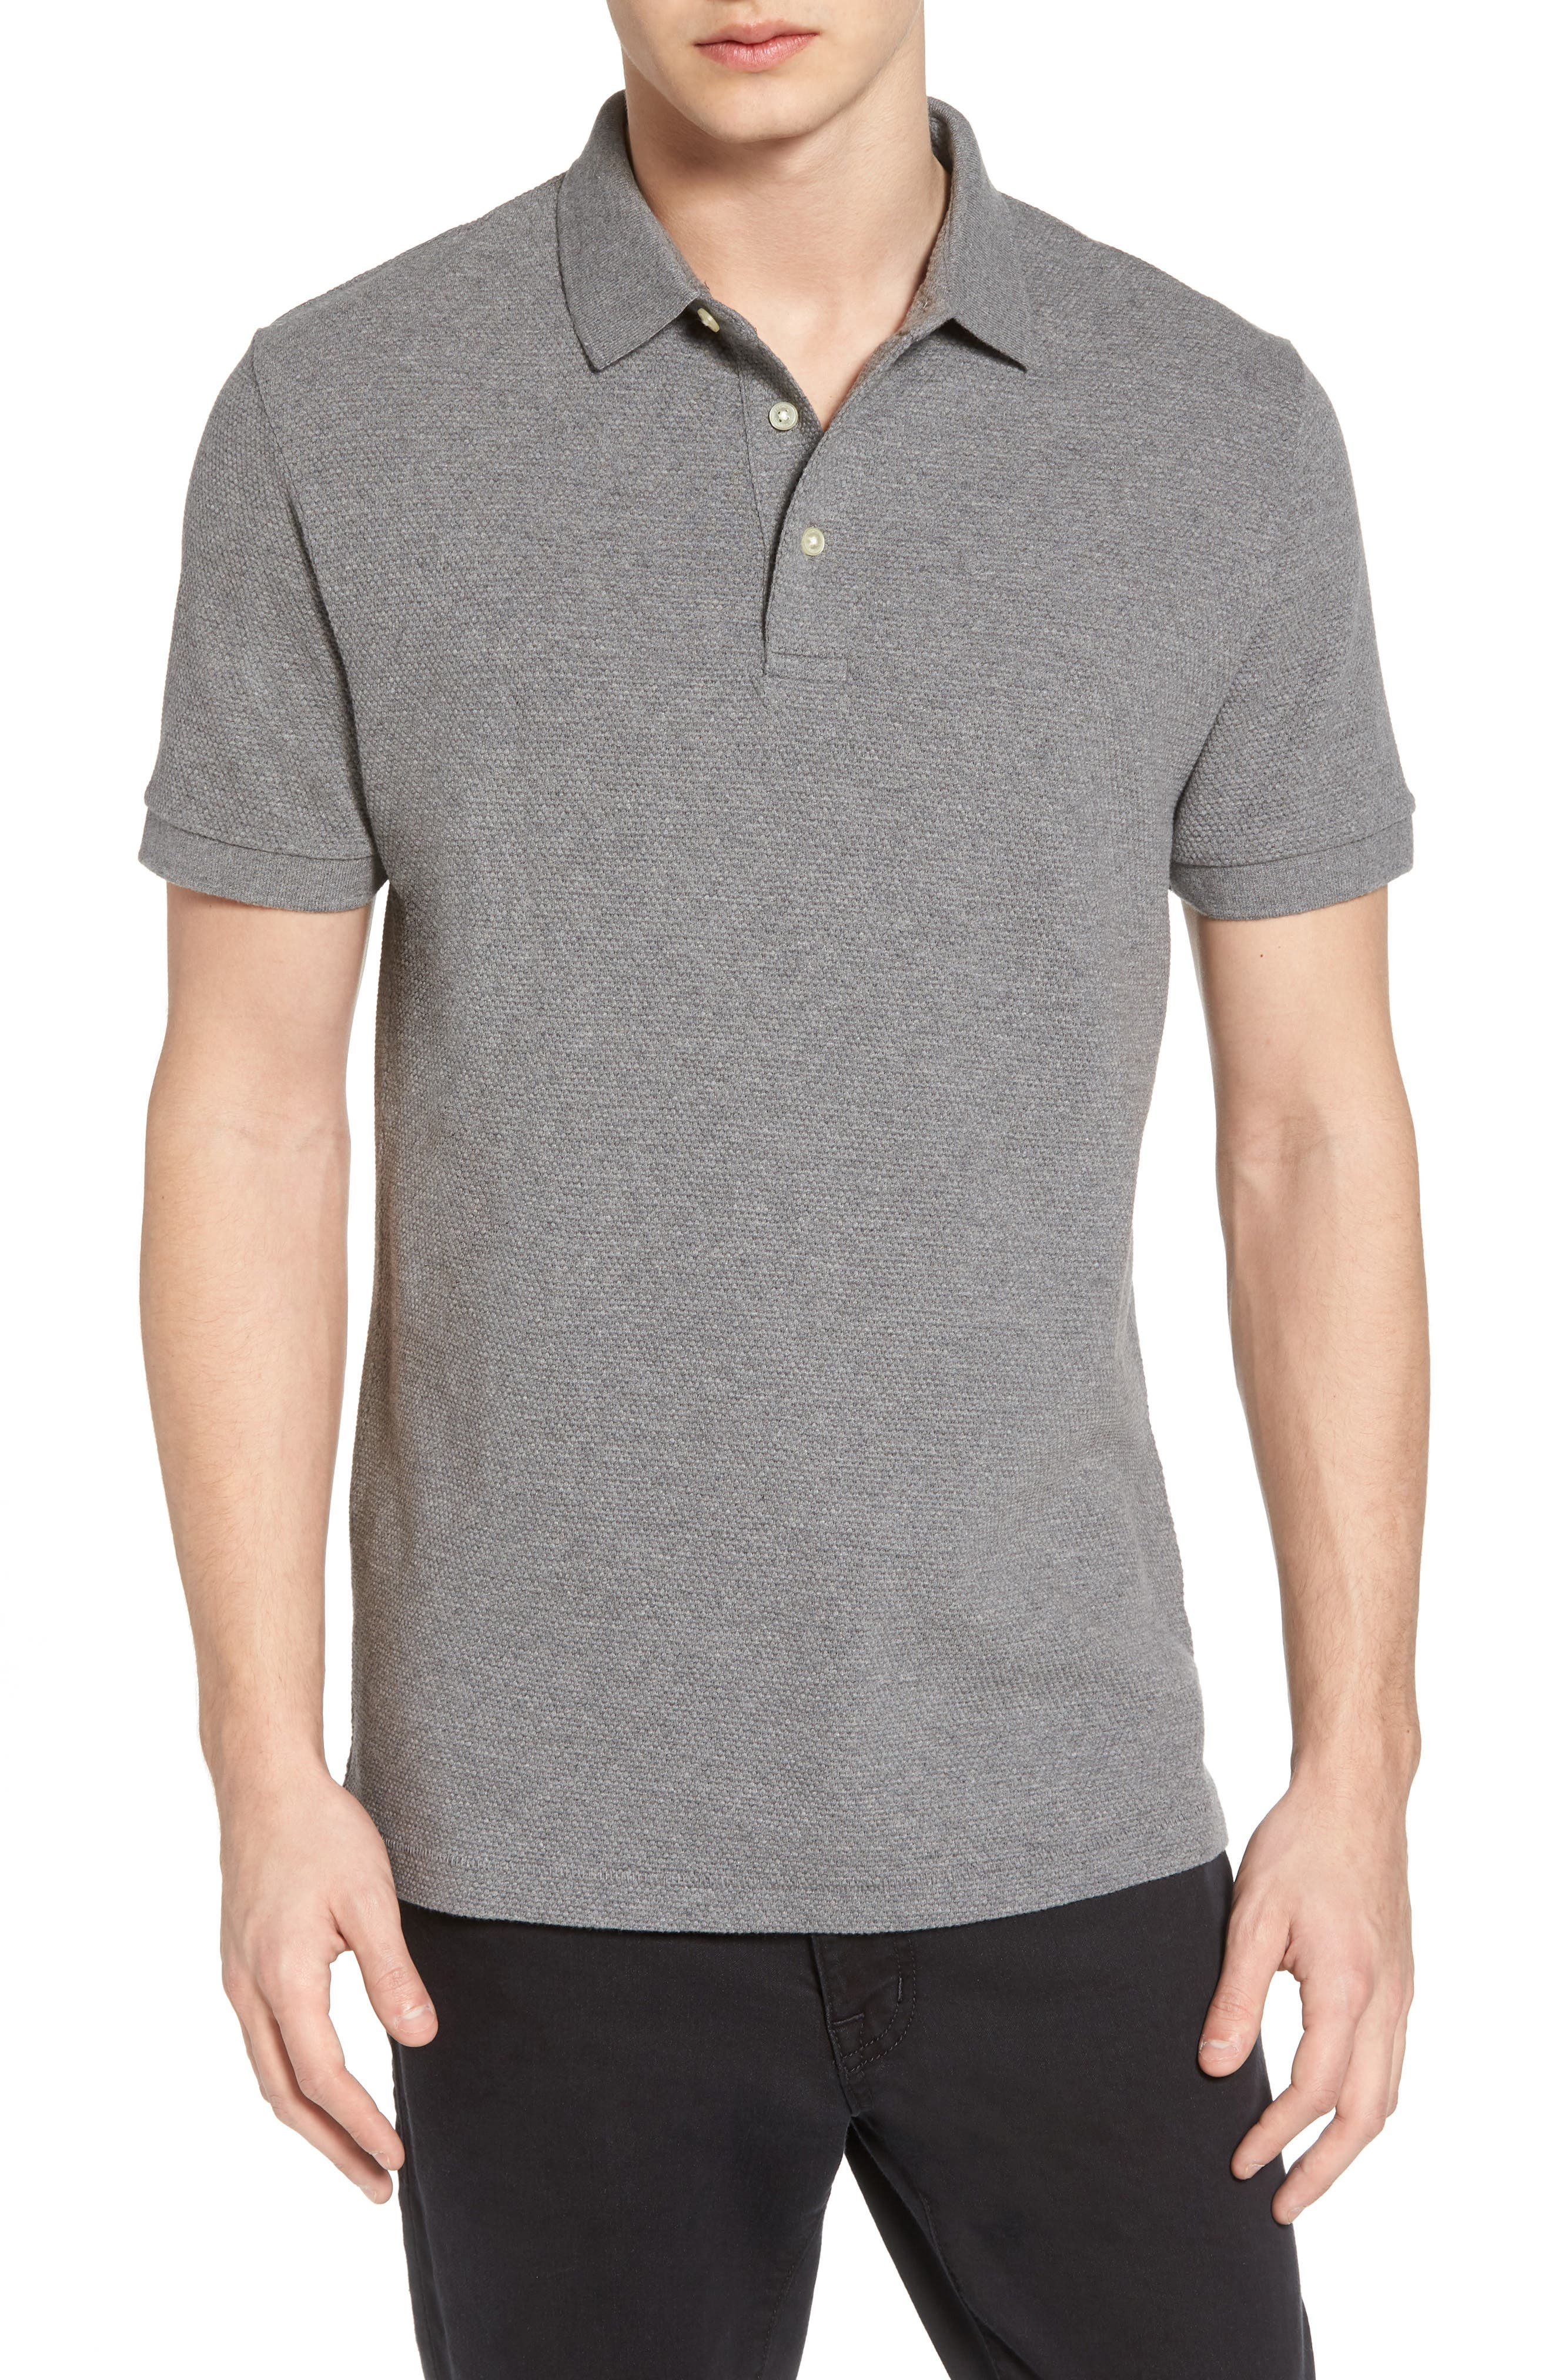 FRENCH CONNECTION, Ampthill Pebble Knit Polo, Main thumbnail 1, color, 020